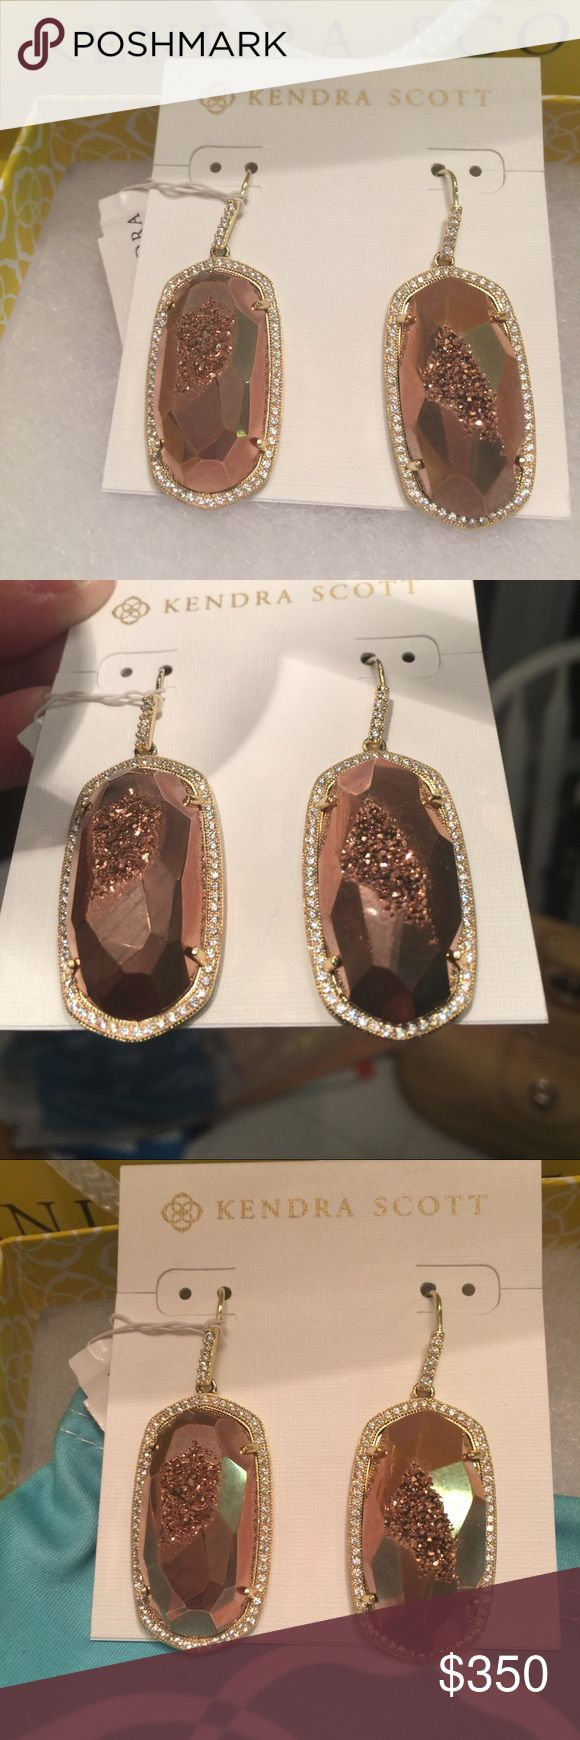 NWT Kendra Scott Rose Gold Ellen Earrings RARE😊 Brand new with tags, these retired and impossible to find Ellen earrings are stunning! The rose drusy stones are flawless, and the yellow gold drop setting, surrounded by brilliant individually-set stones, is so eye-catching. There are no flaws, scratches, missing stones, NOTHING at all wrong! Comes with a signature KS blue dustbag. Please no trades and no lowballs-these are not available anywhere and I searched forever for them! Kendra Scott…